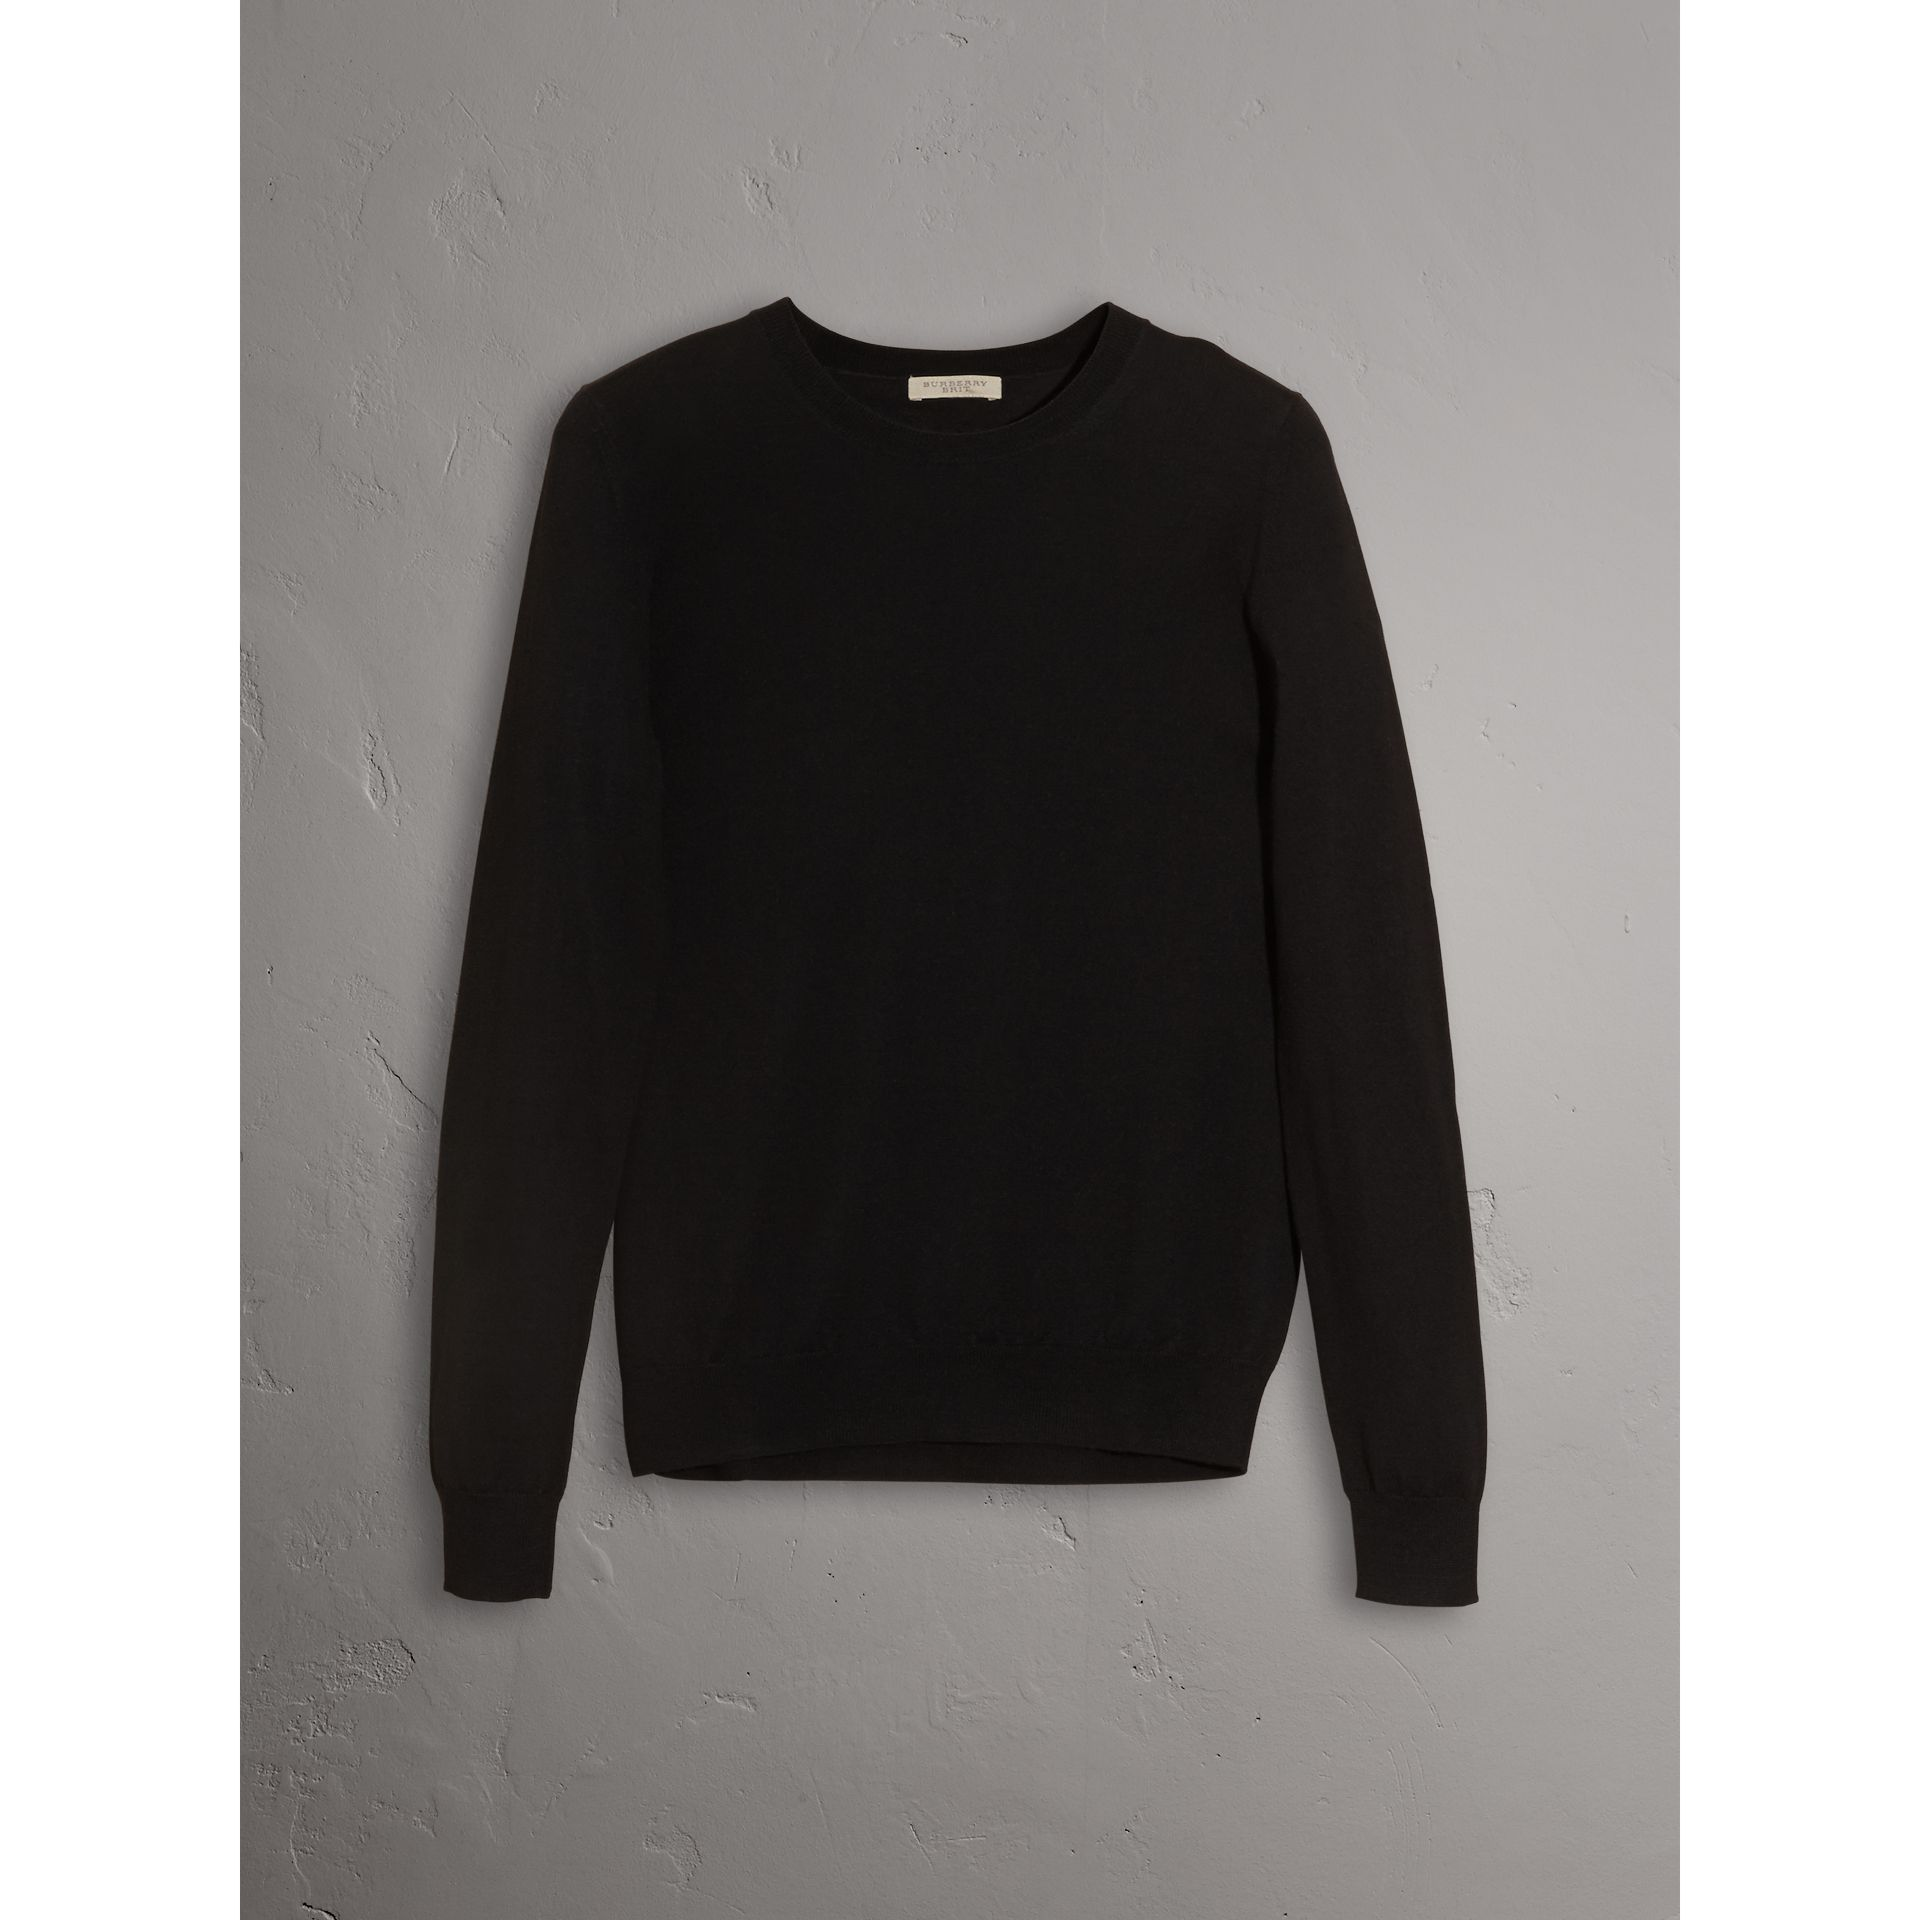 Check Detail Merino Wool Crew Neck Sweater in Black - Women | Burberry United States - gallery image 3